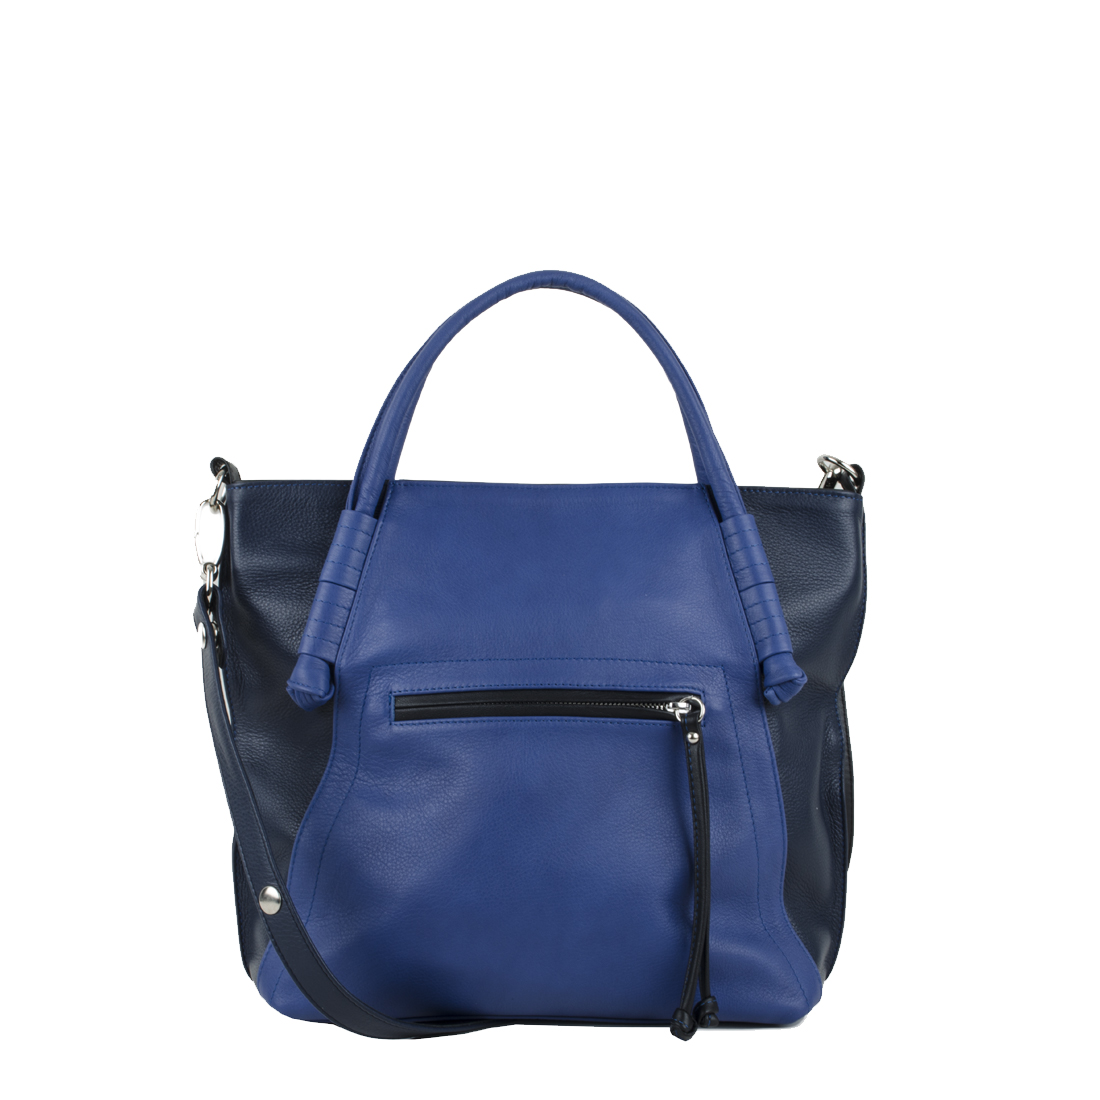 Amy Blue Navy Leather Tote Bag